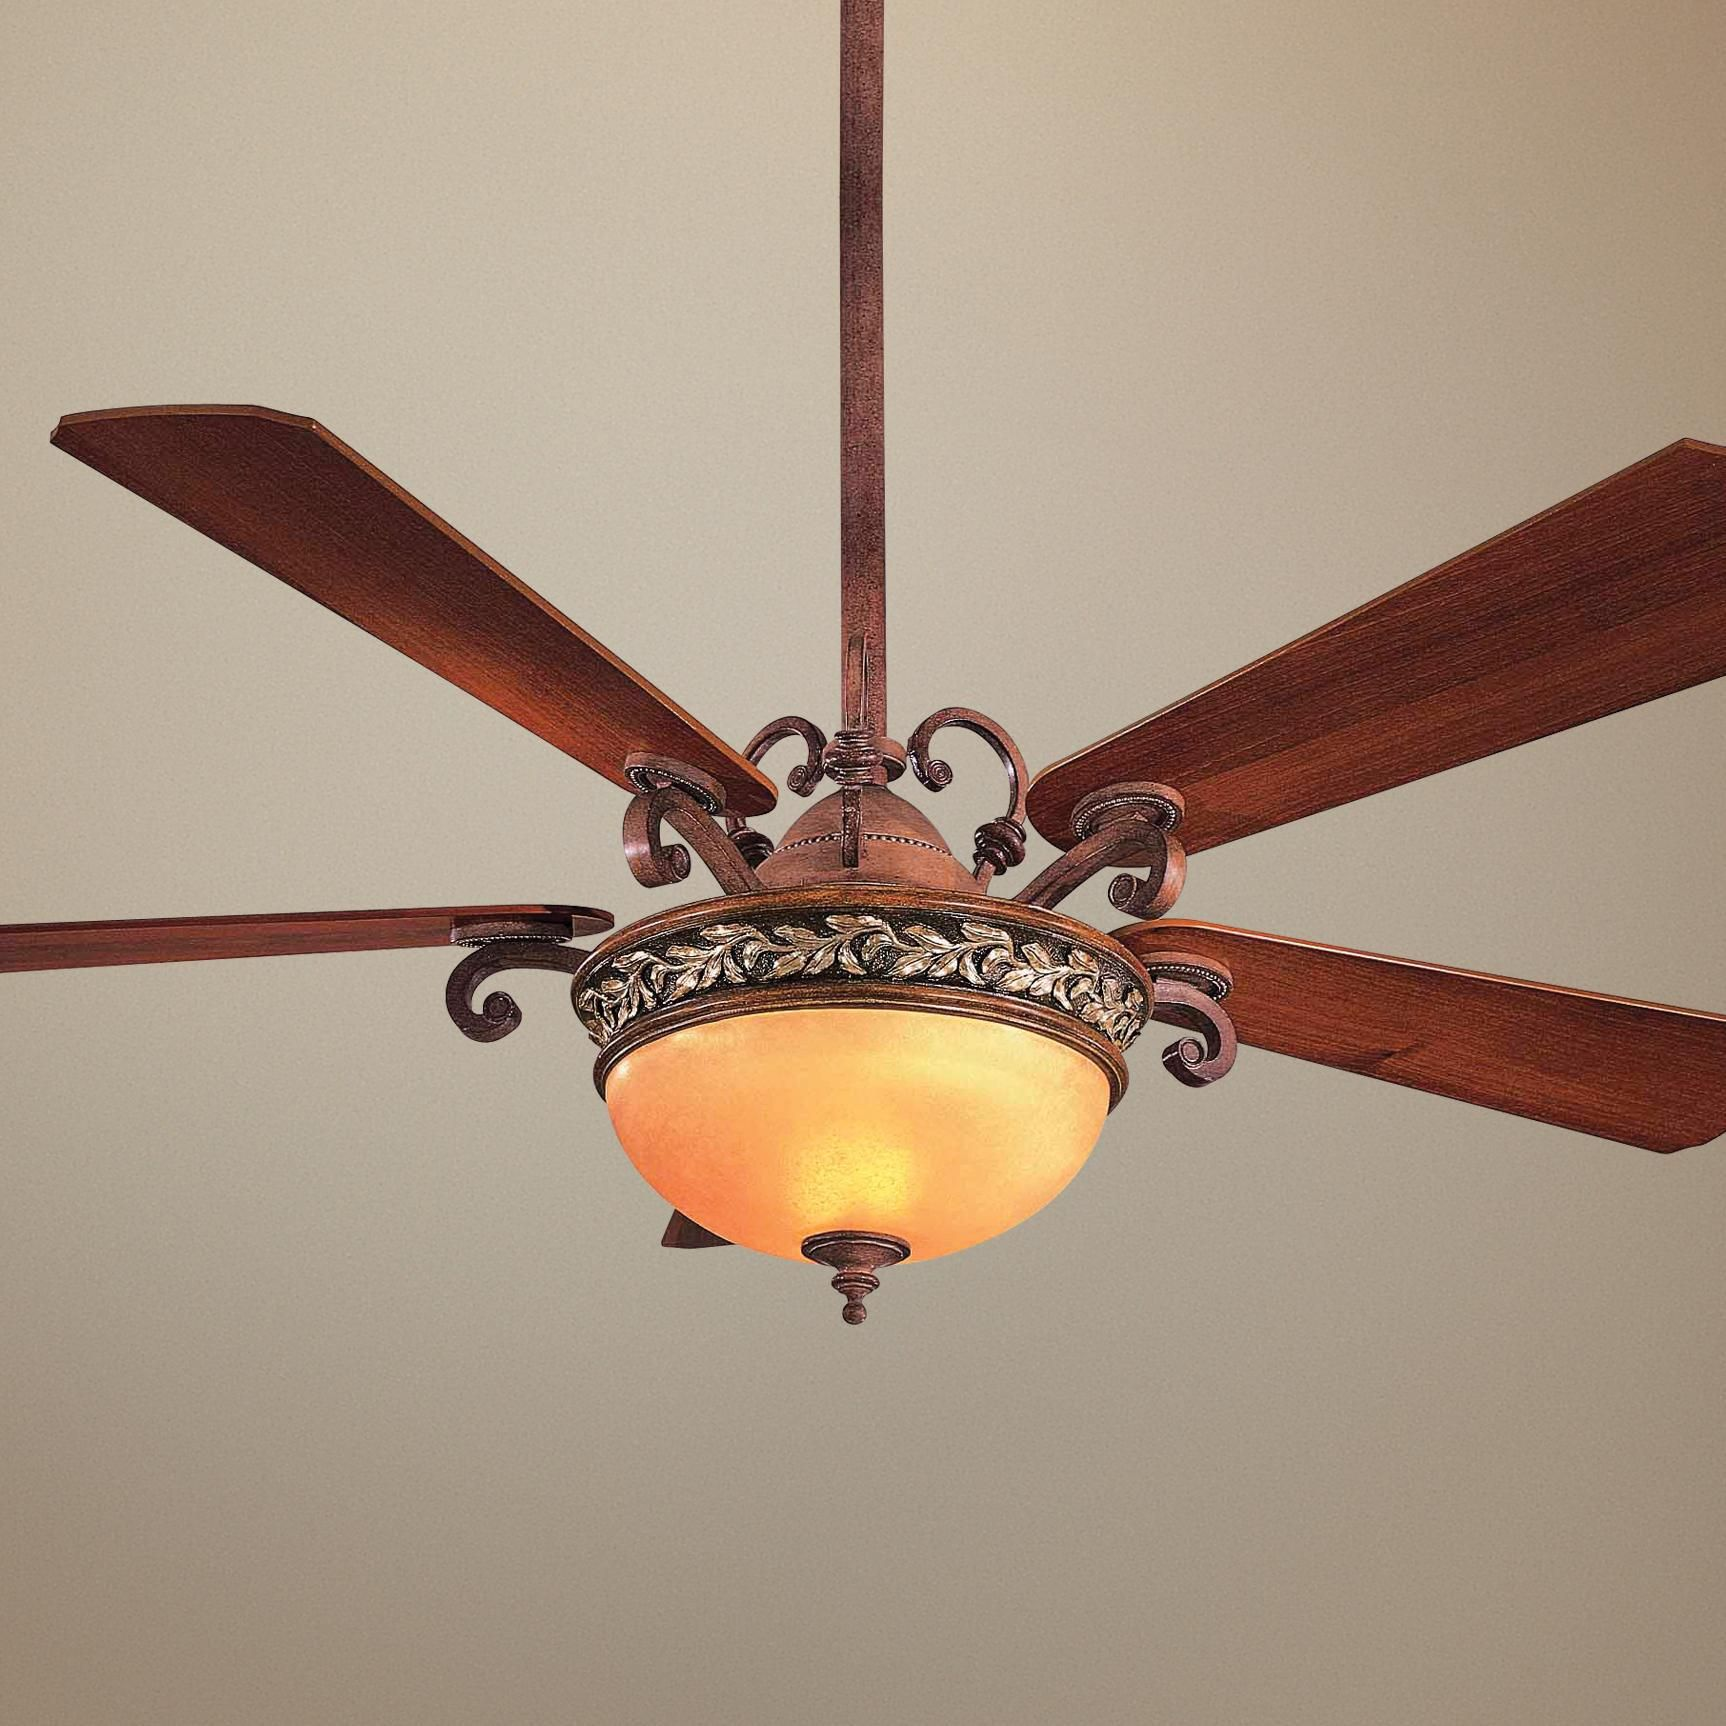 "56"" Minka Aire Salon Grand Florence Patina Ceiling Fan"